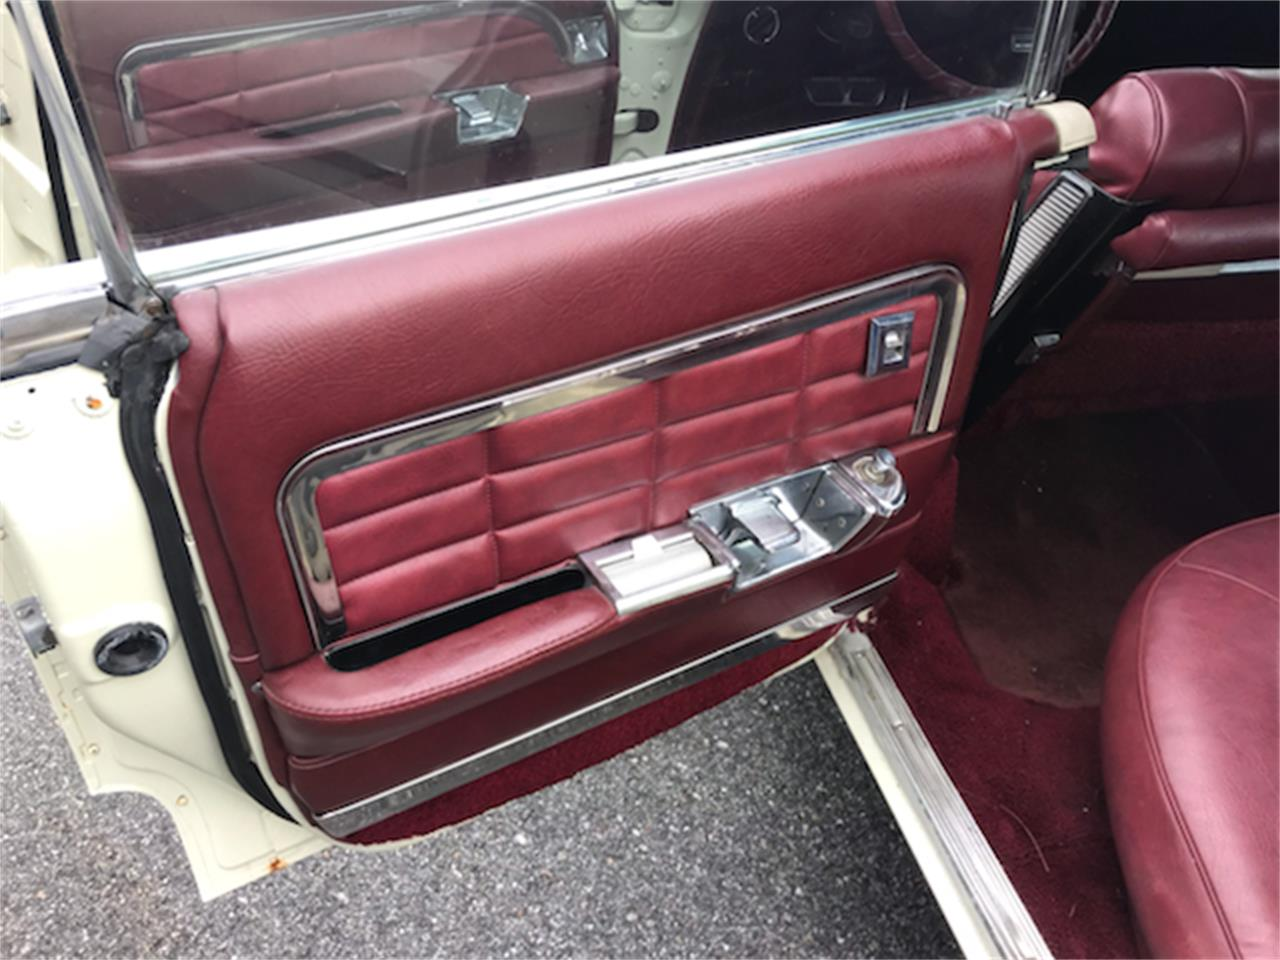 Large Picture of 1959 Cadillac Fleetwood located in Massachusetts - $39,900.00 Offered by B & S Enterprises - ONYU